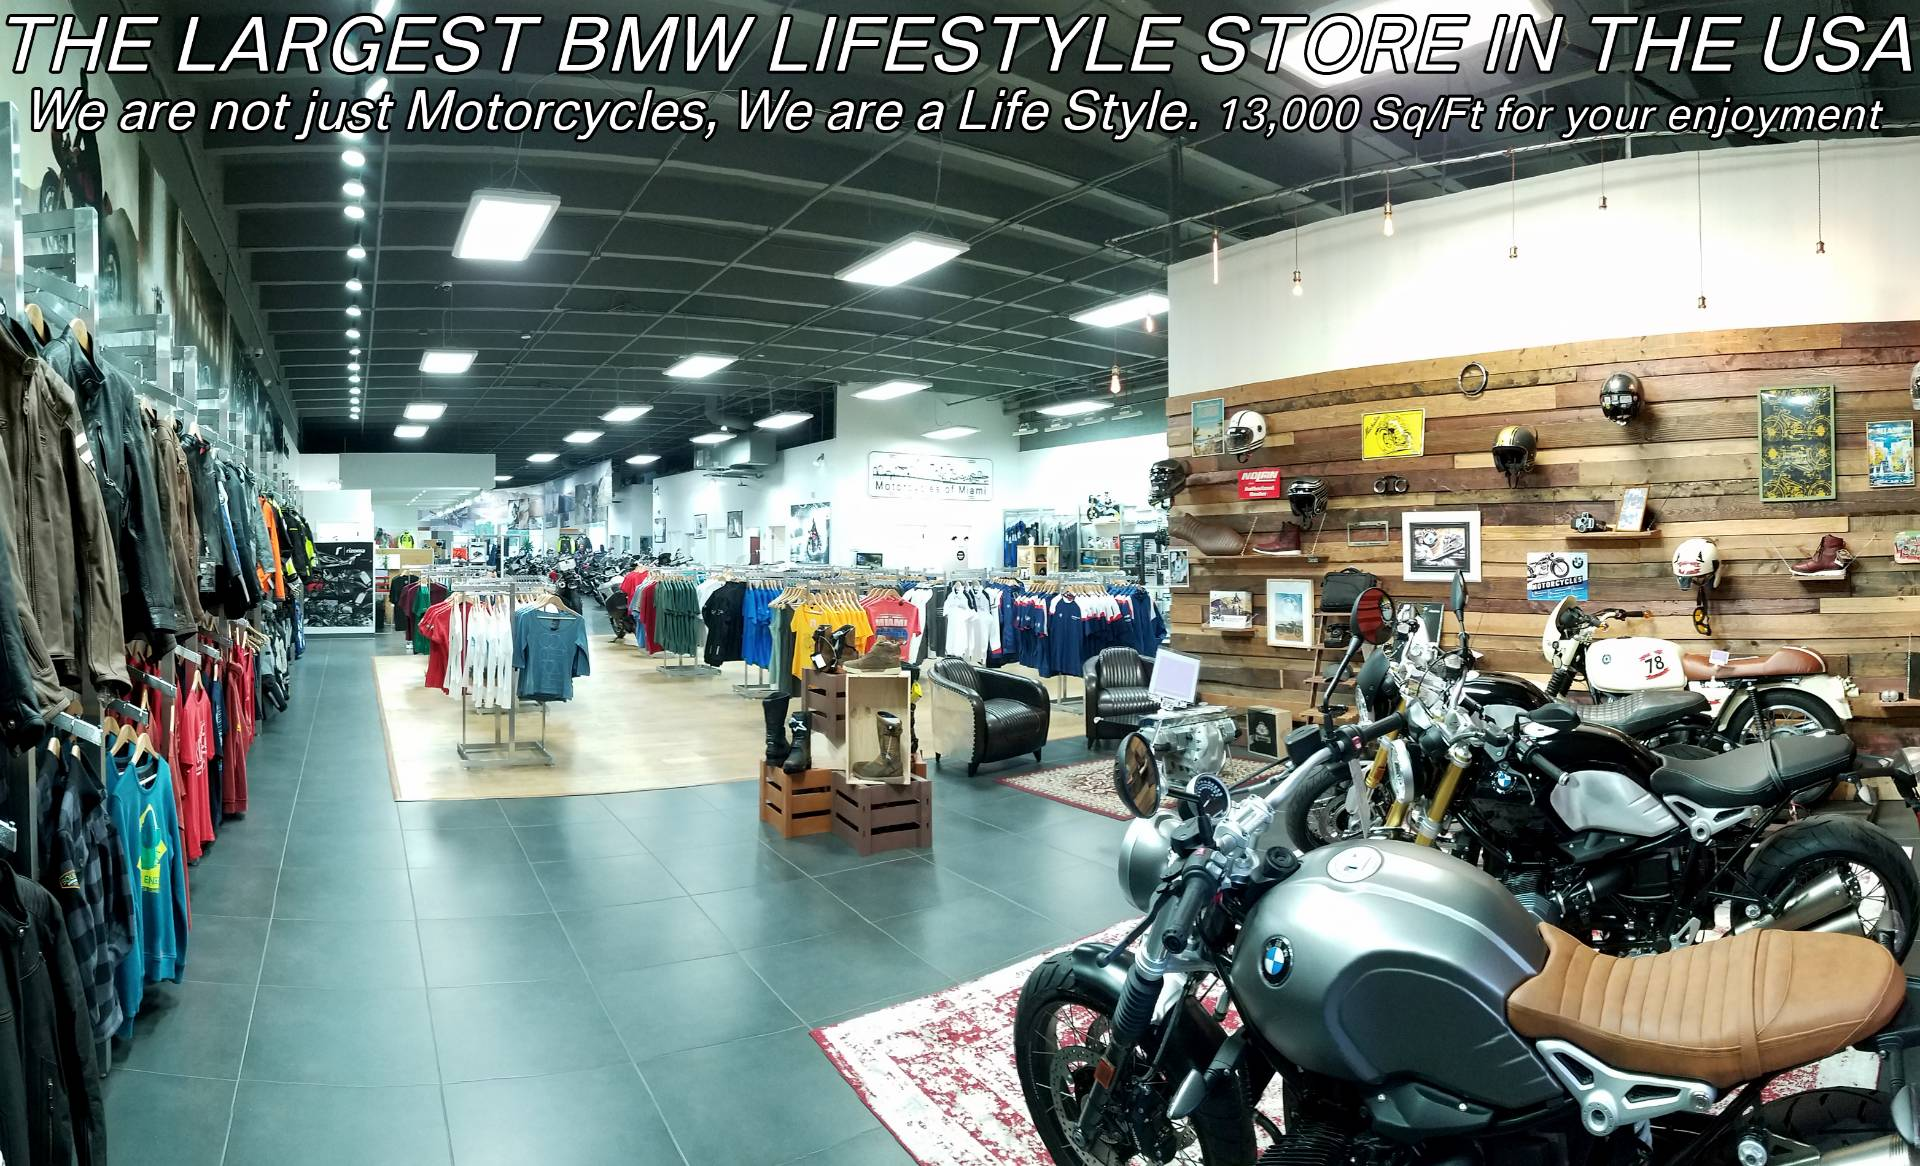 New 2018 BMW G 310 R For Sale Triple Color, BMW G 310 R Motorsport For Sale, BMW Motorcycle G 310R, new BMW G310R, New BMW Motorcycle